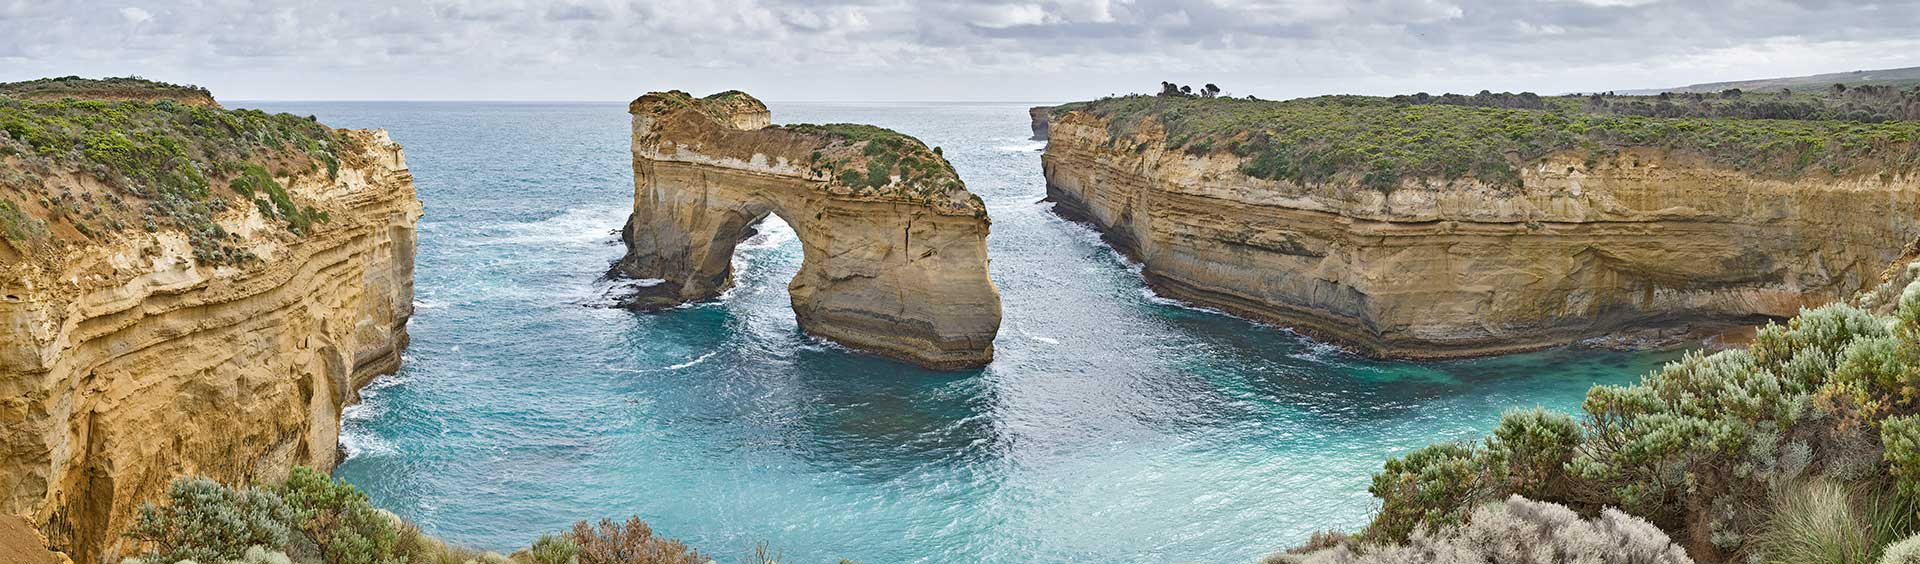 image of great ocean road in Victoria